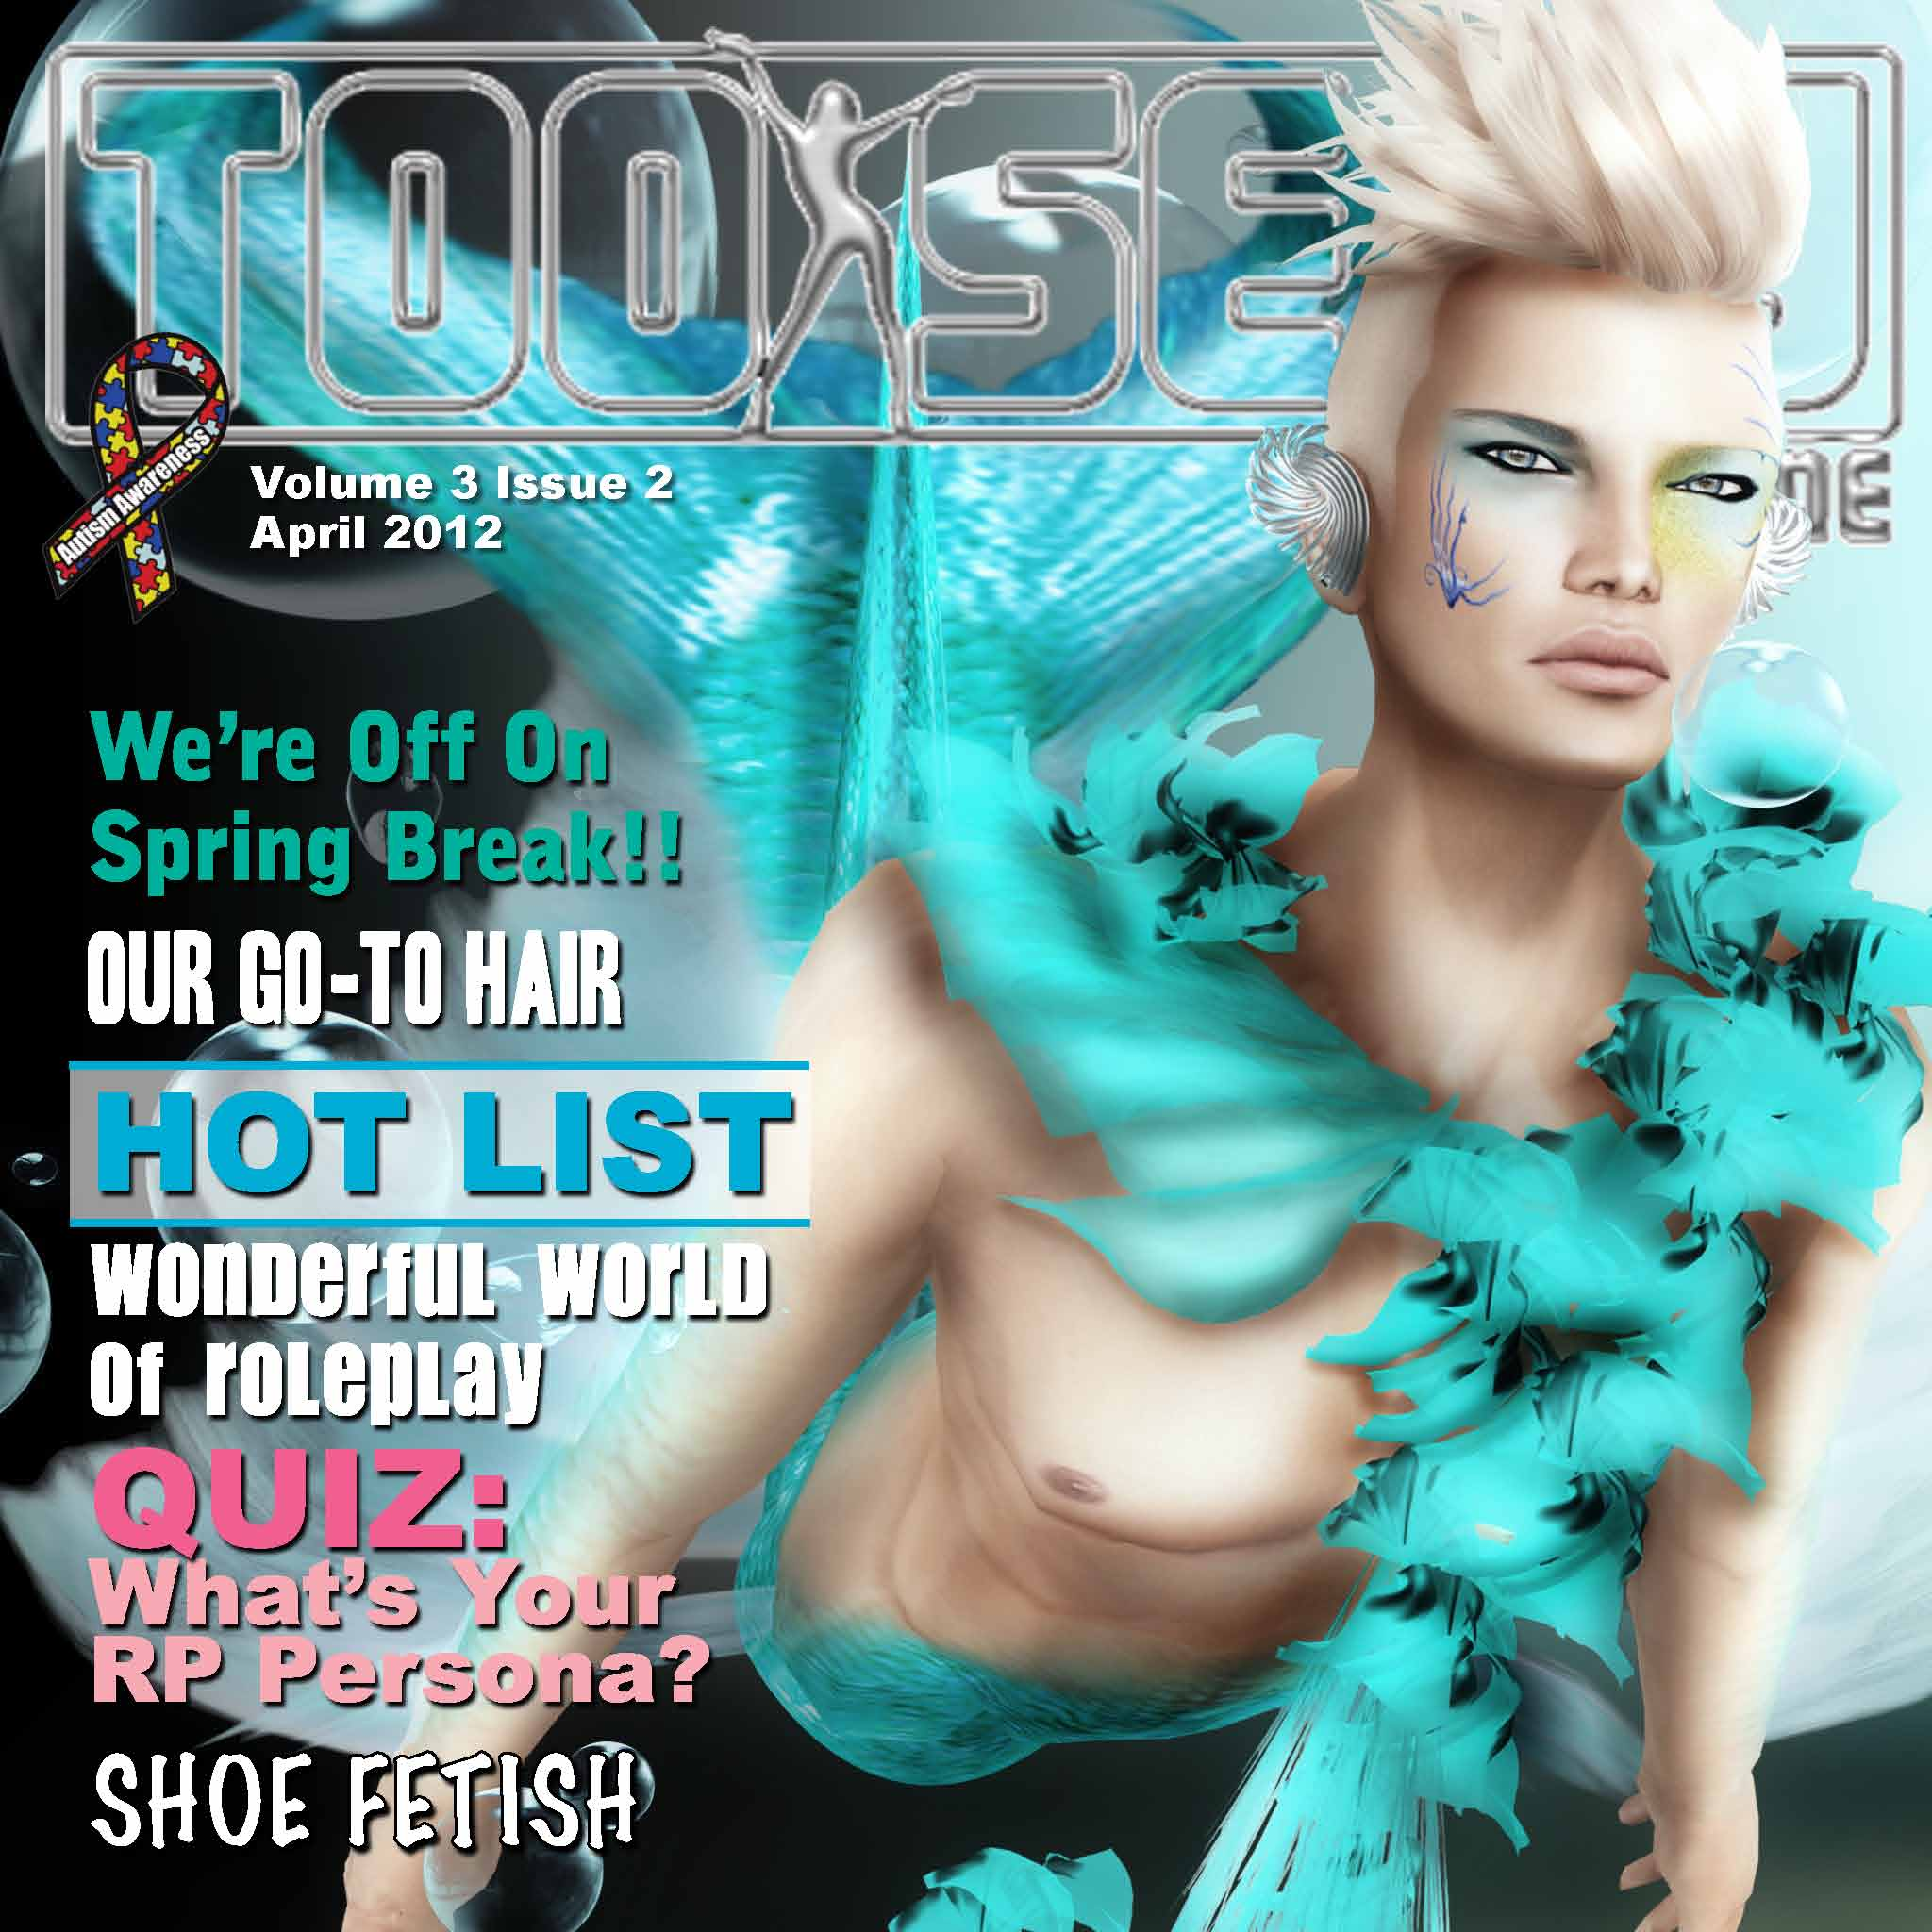 Too Sexy Nr.2 April 2012 free download